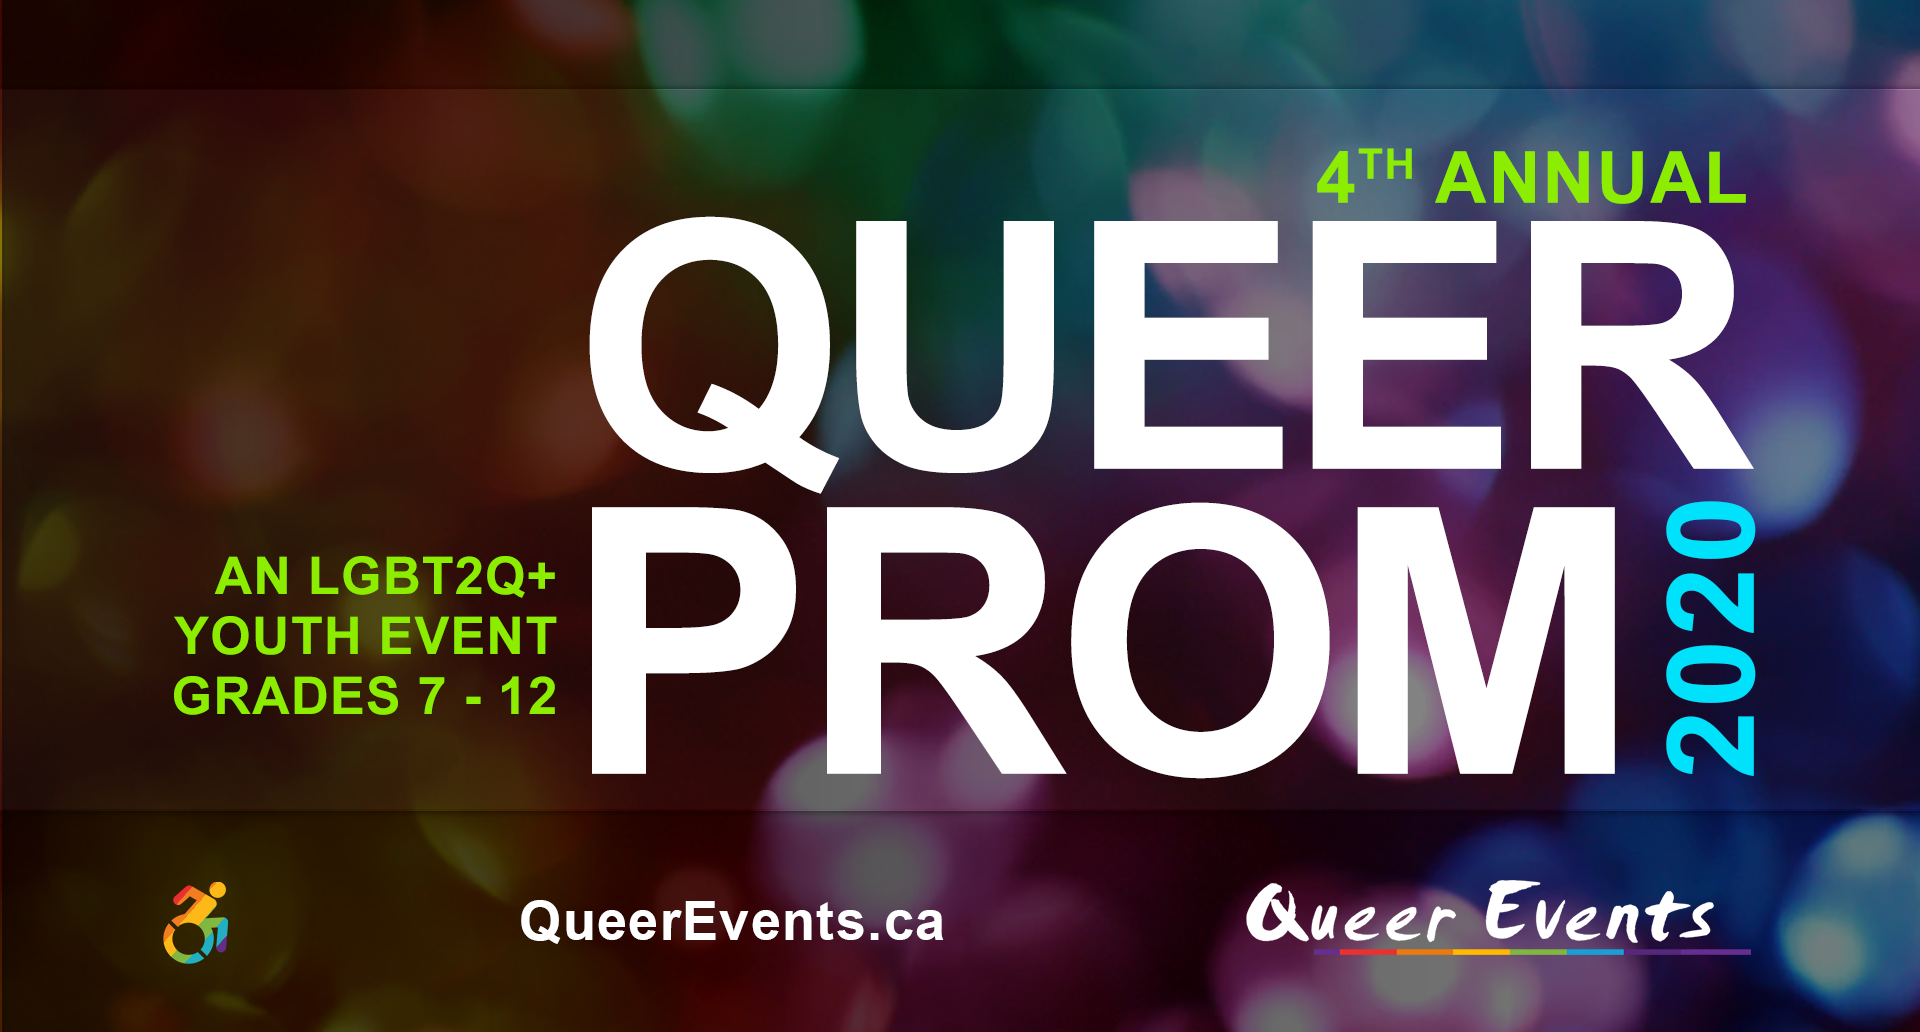 QueerEvents.ca - London event listing - Queer Prom for Youth